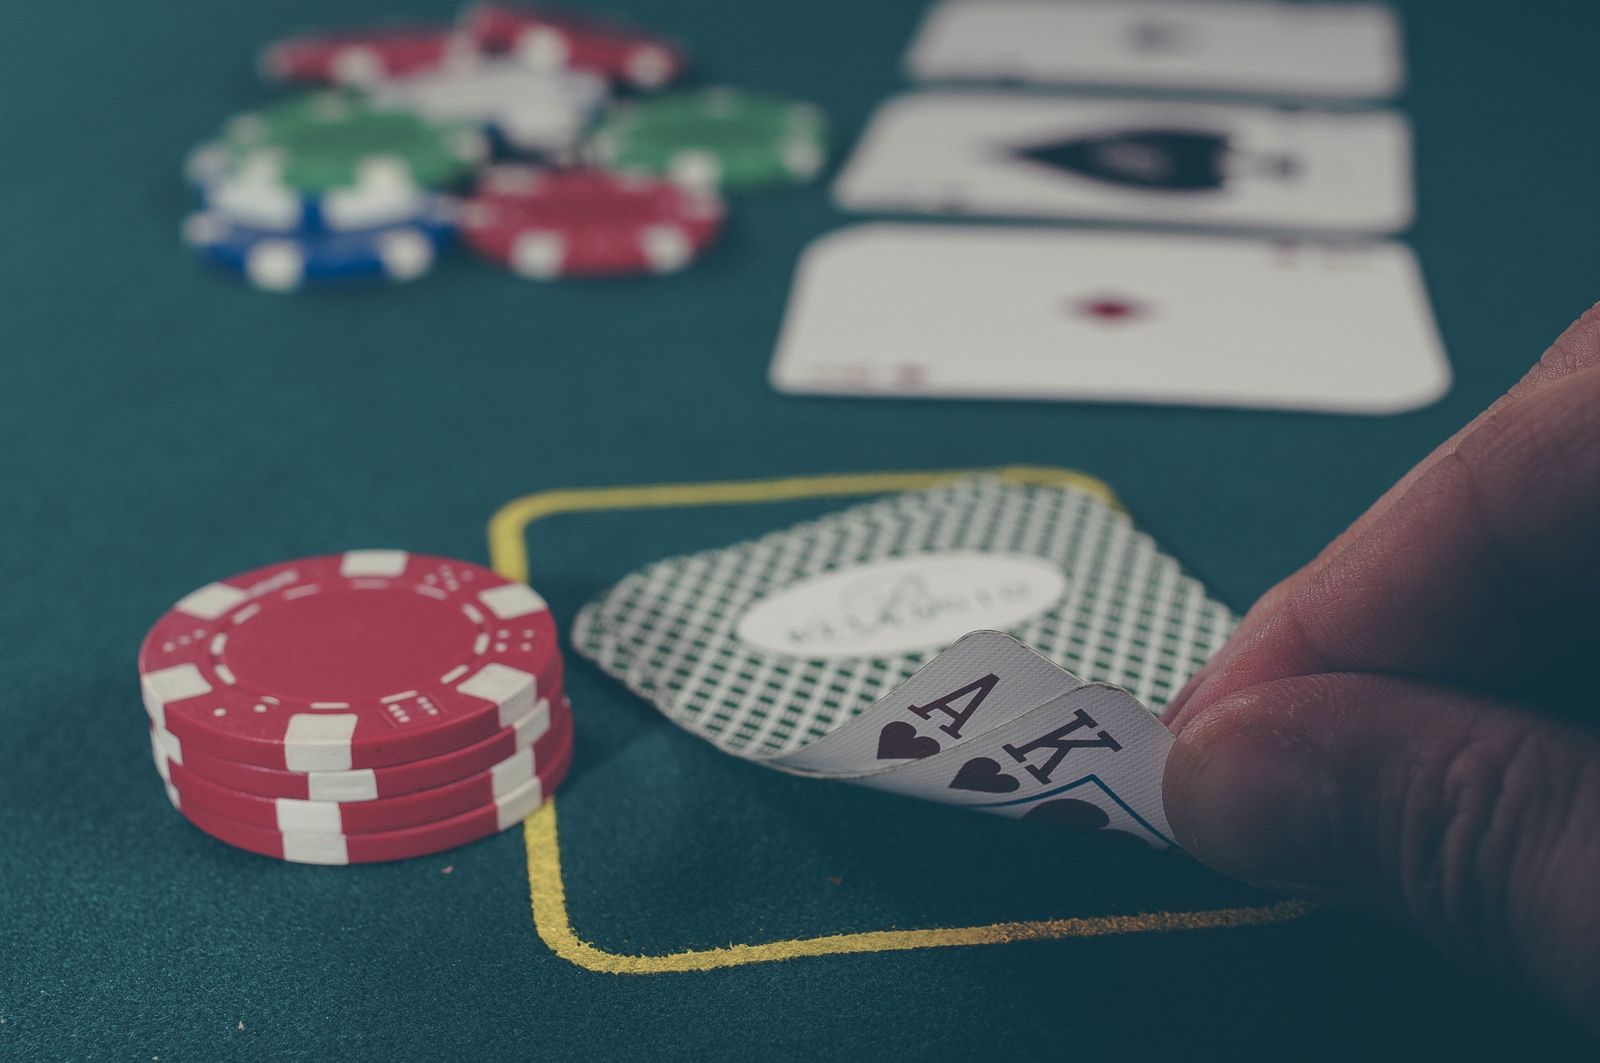 What You Did Not Notice About Casino Is Extremely Effective